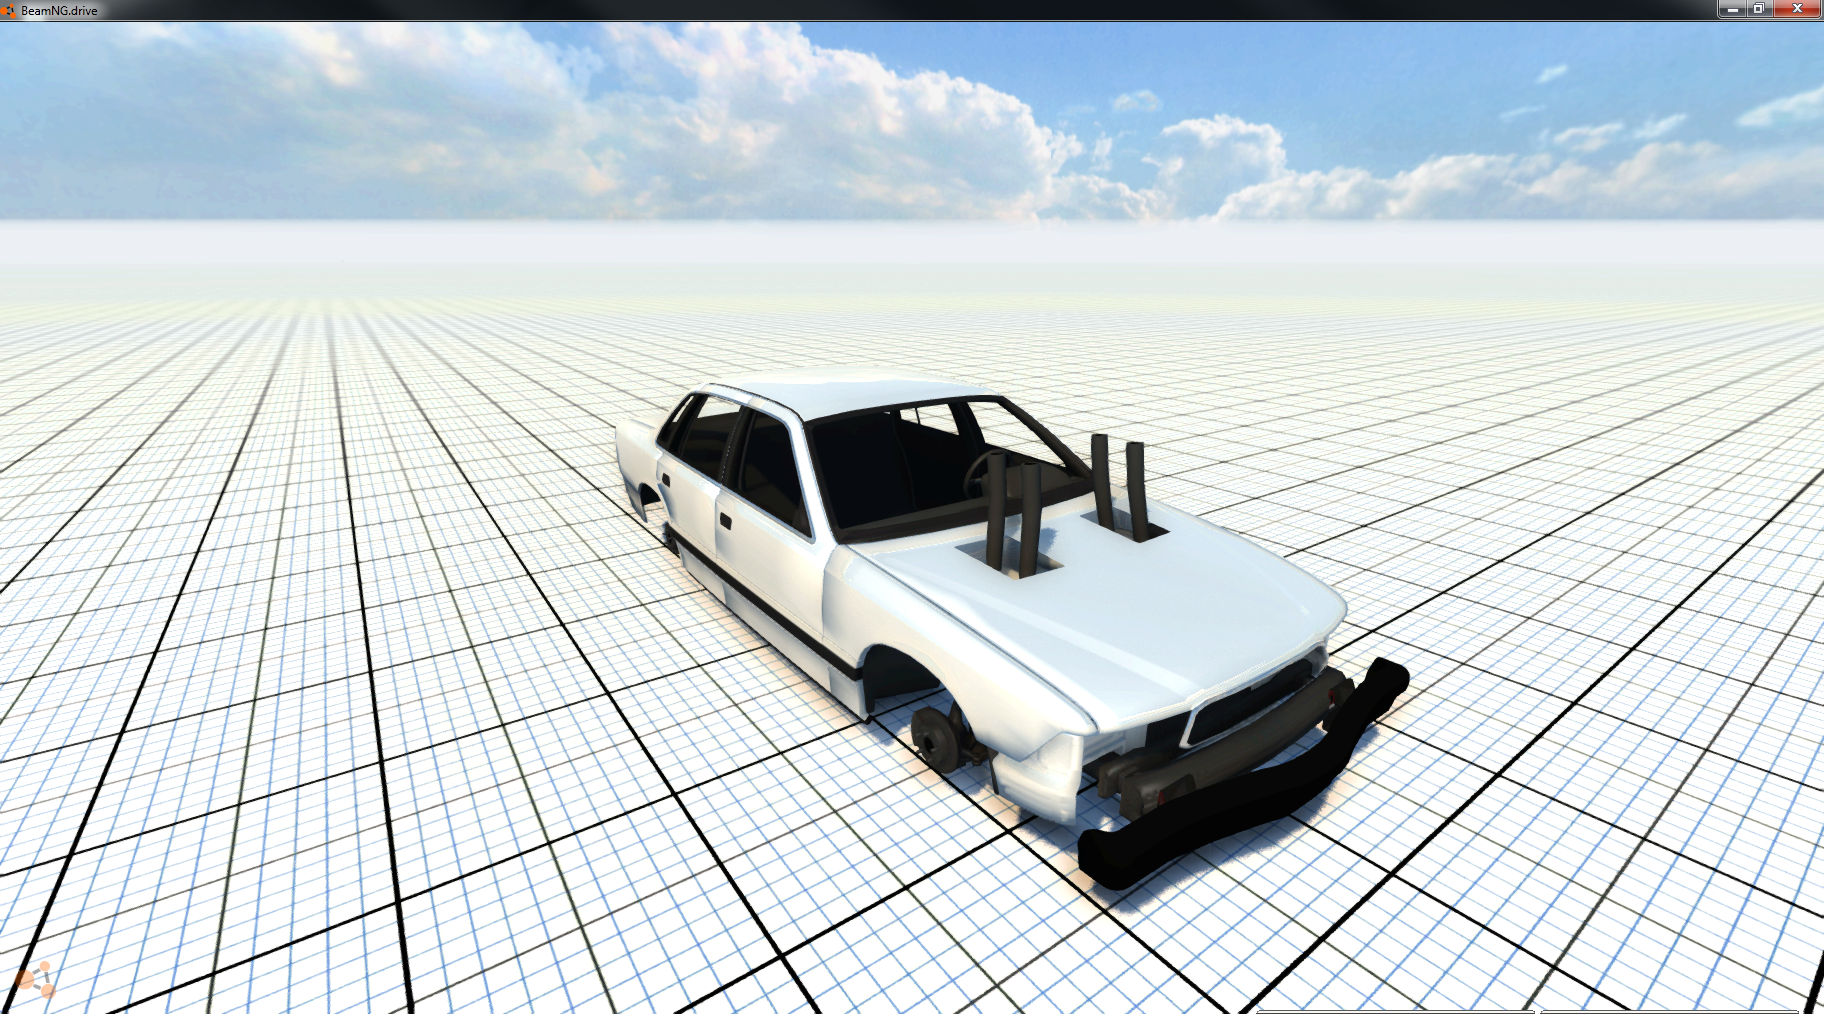 Wip gavril grand marshal demo derby beamng demo derby car wipg sciox Choice Image